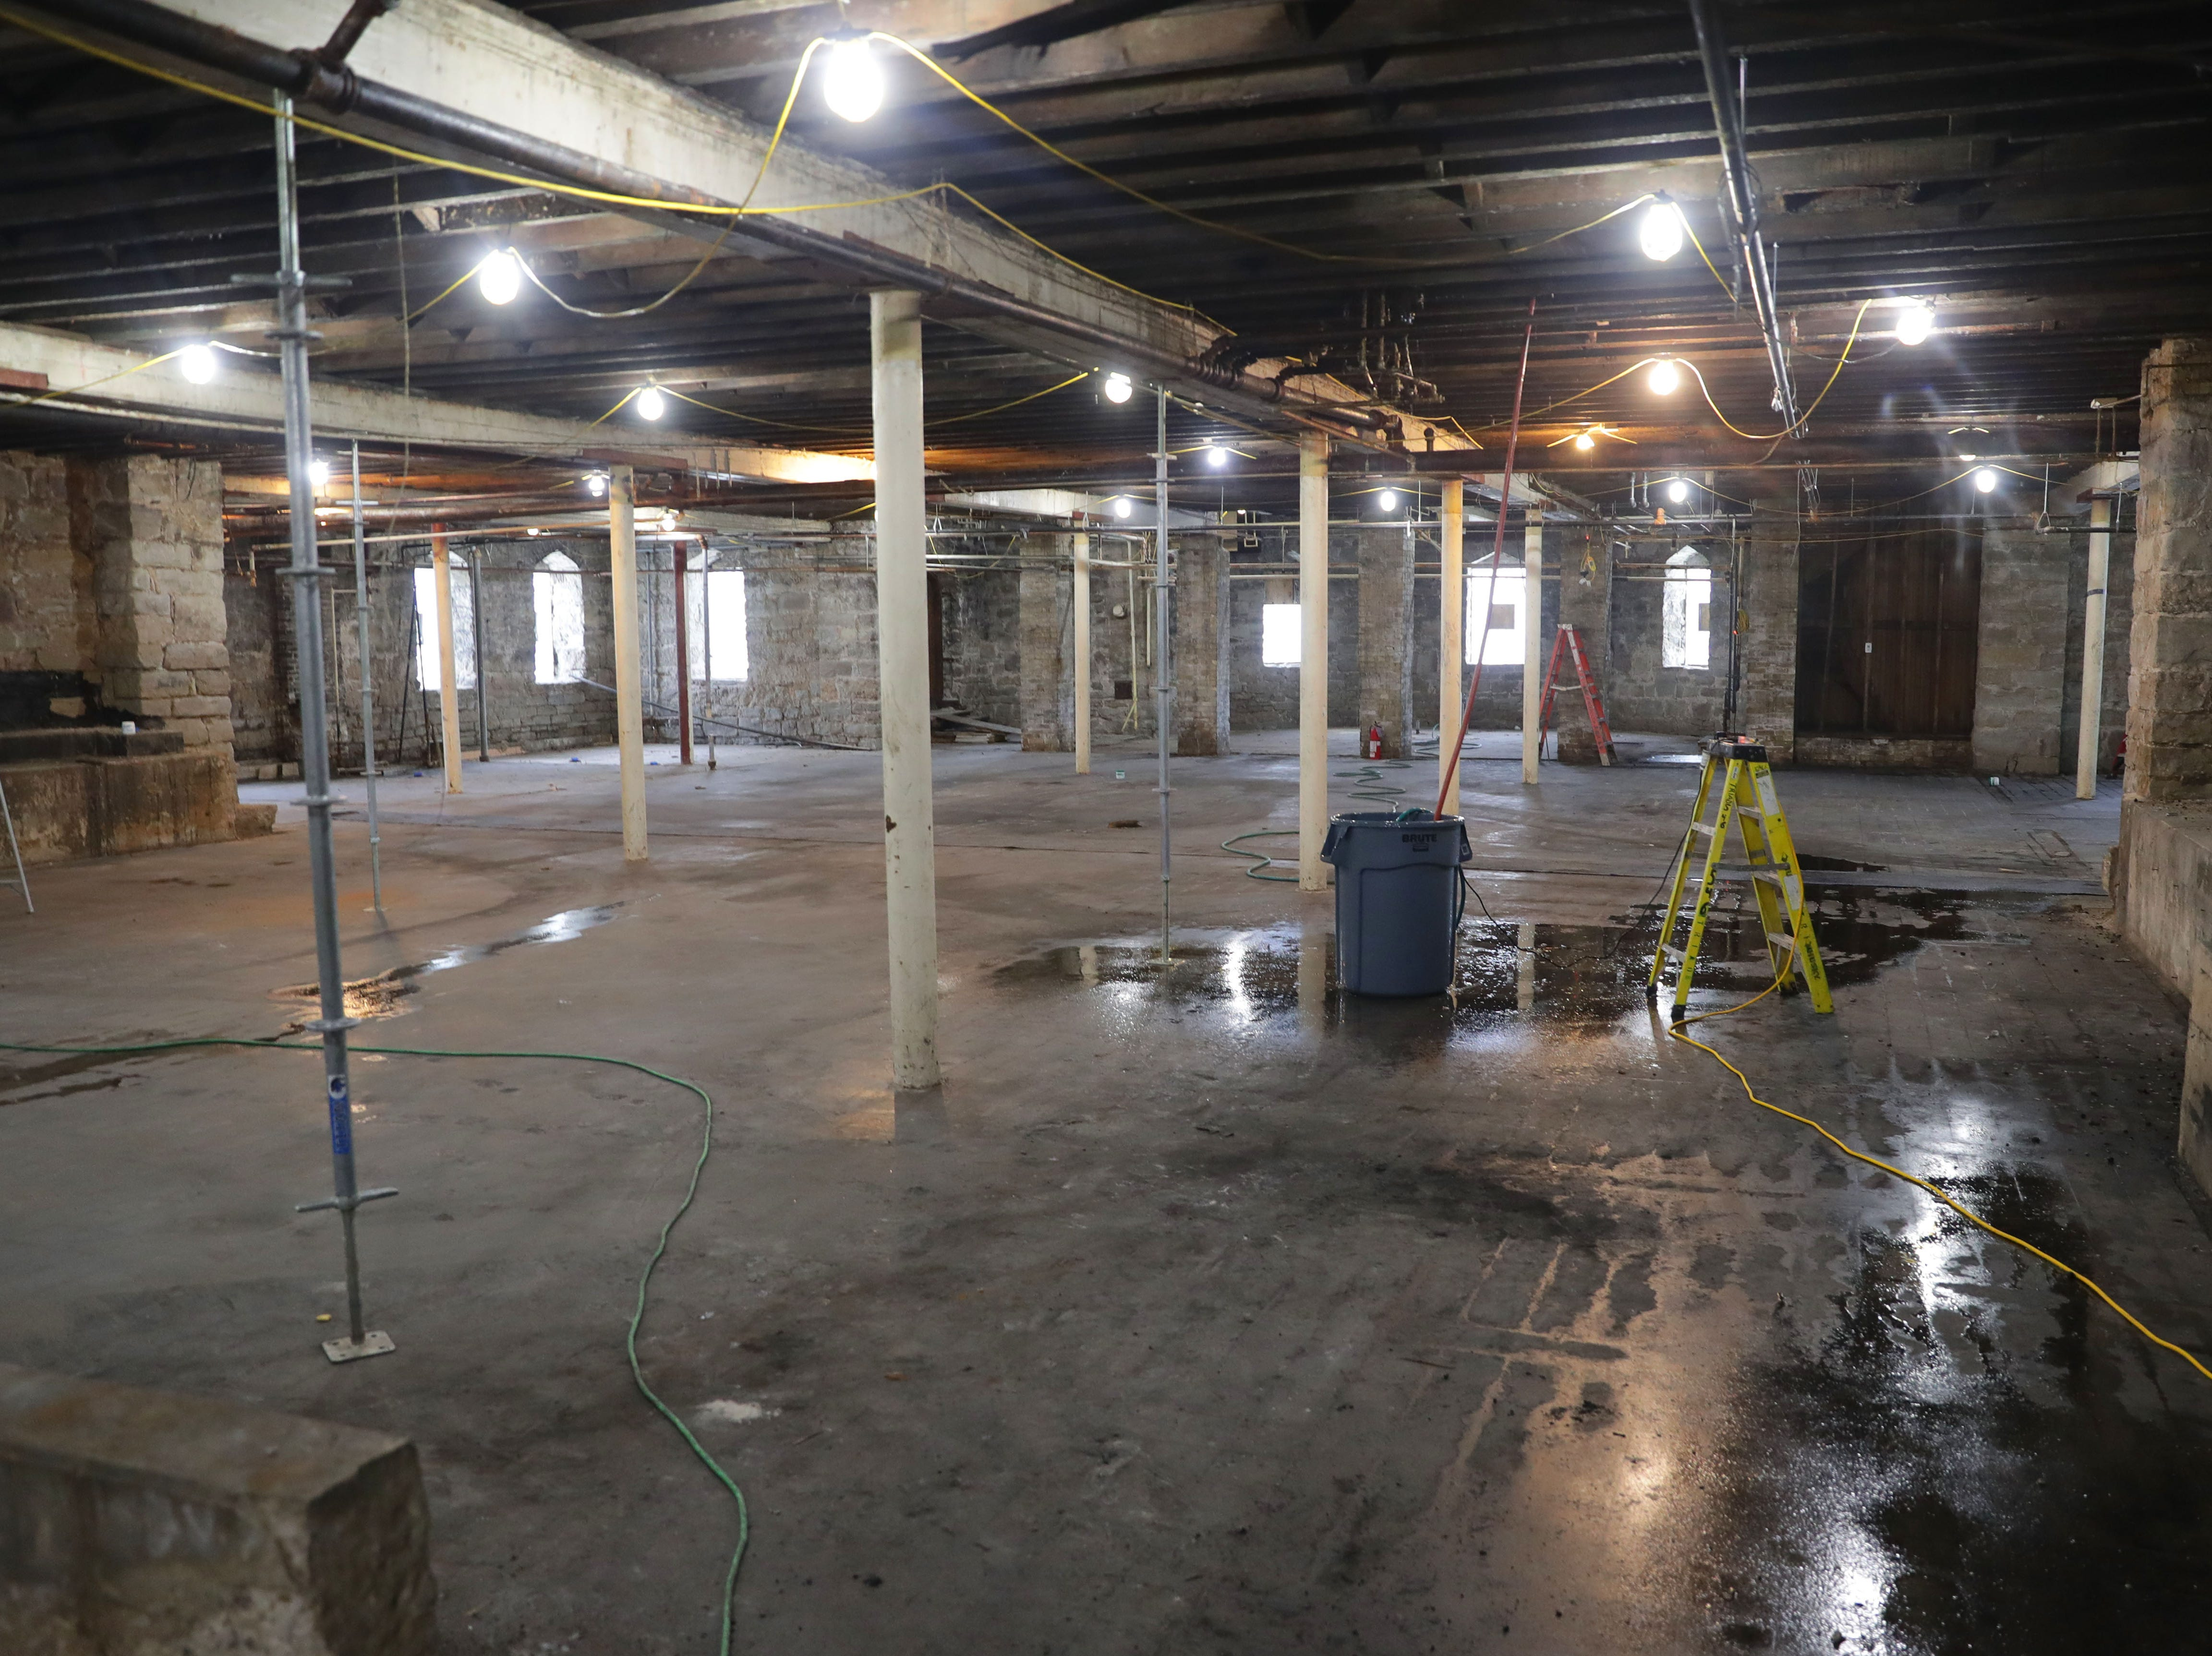 The basement area, where meeting space and classes were held before the fire is seen at Trinity Evangelical Lutheran Church  in Milwaukee.